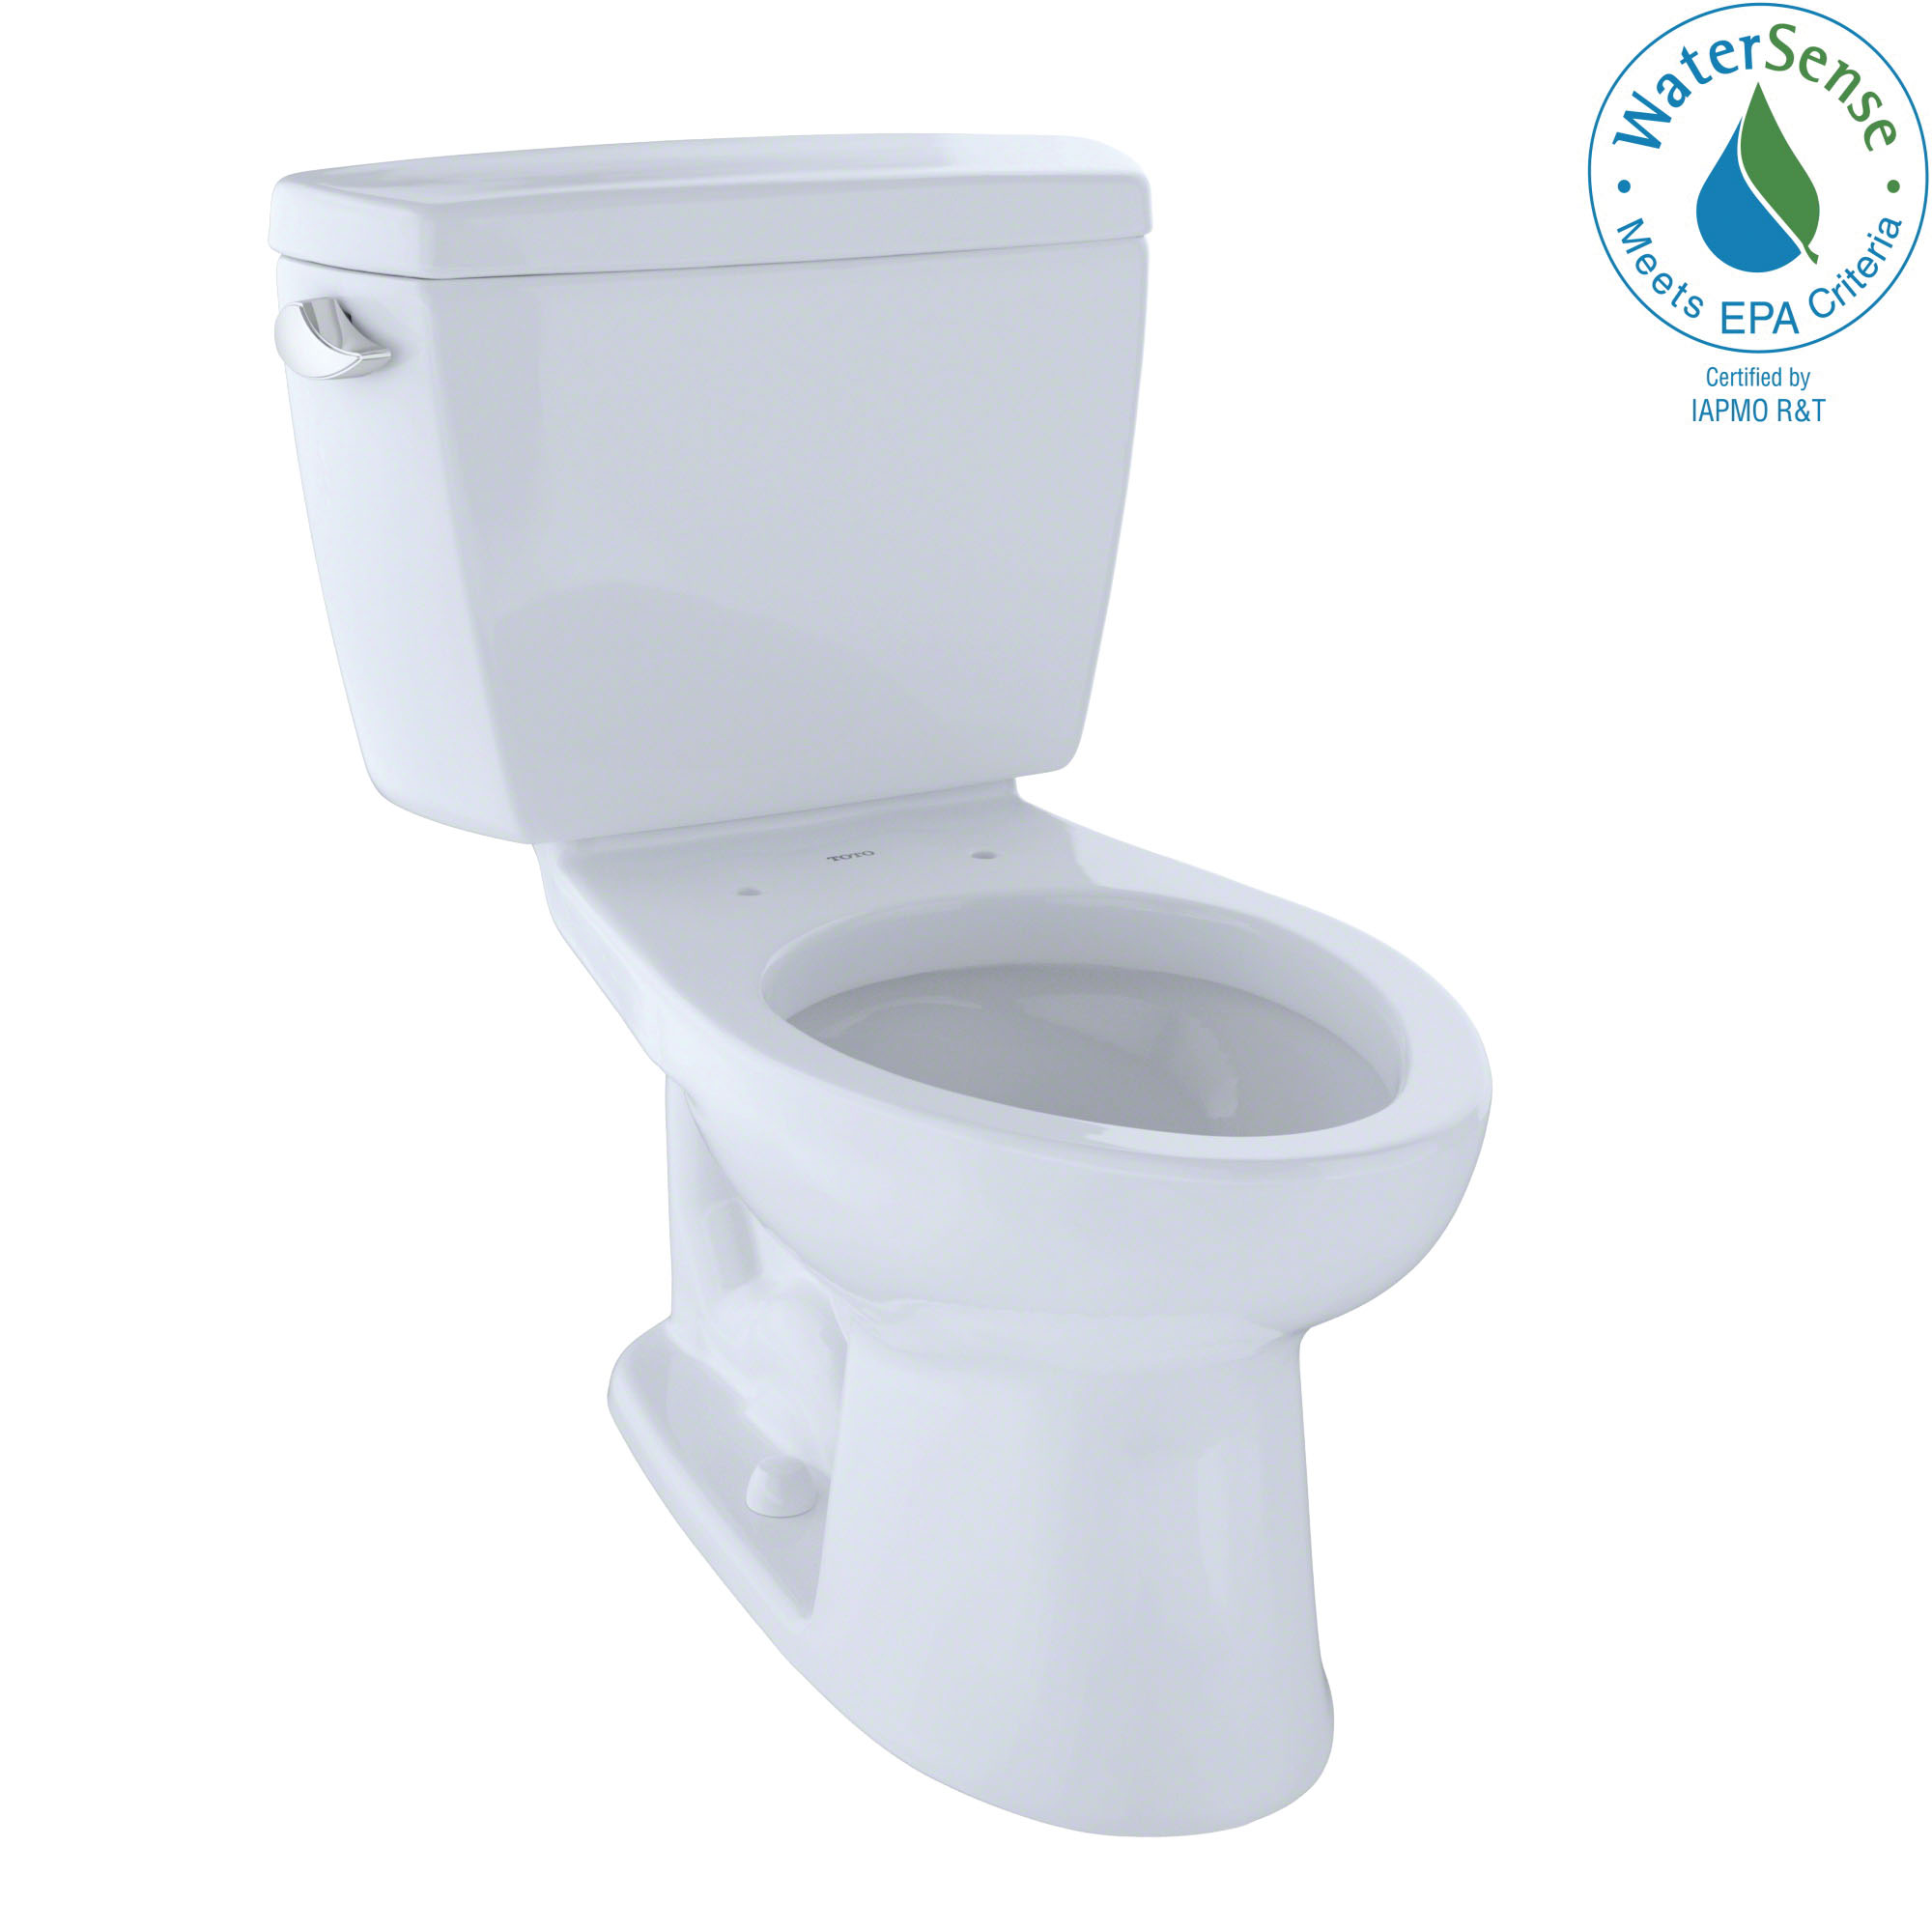 Toto® Eco Drake® CST744E#01 2-Piece Universal Height Close Coupled Toilet With Left-Hand Chrome Trip Lever, Elongated Front Bowl, 15-5/8 in H Rim, 12 in Rough-In, 1.28 gpf, Cotton White, Import